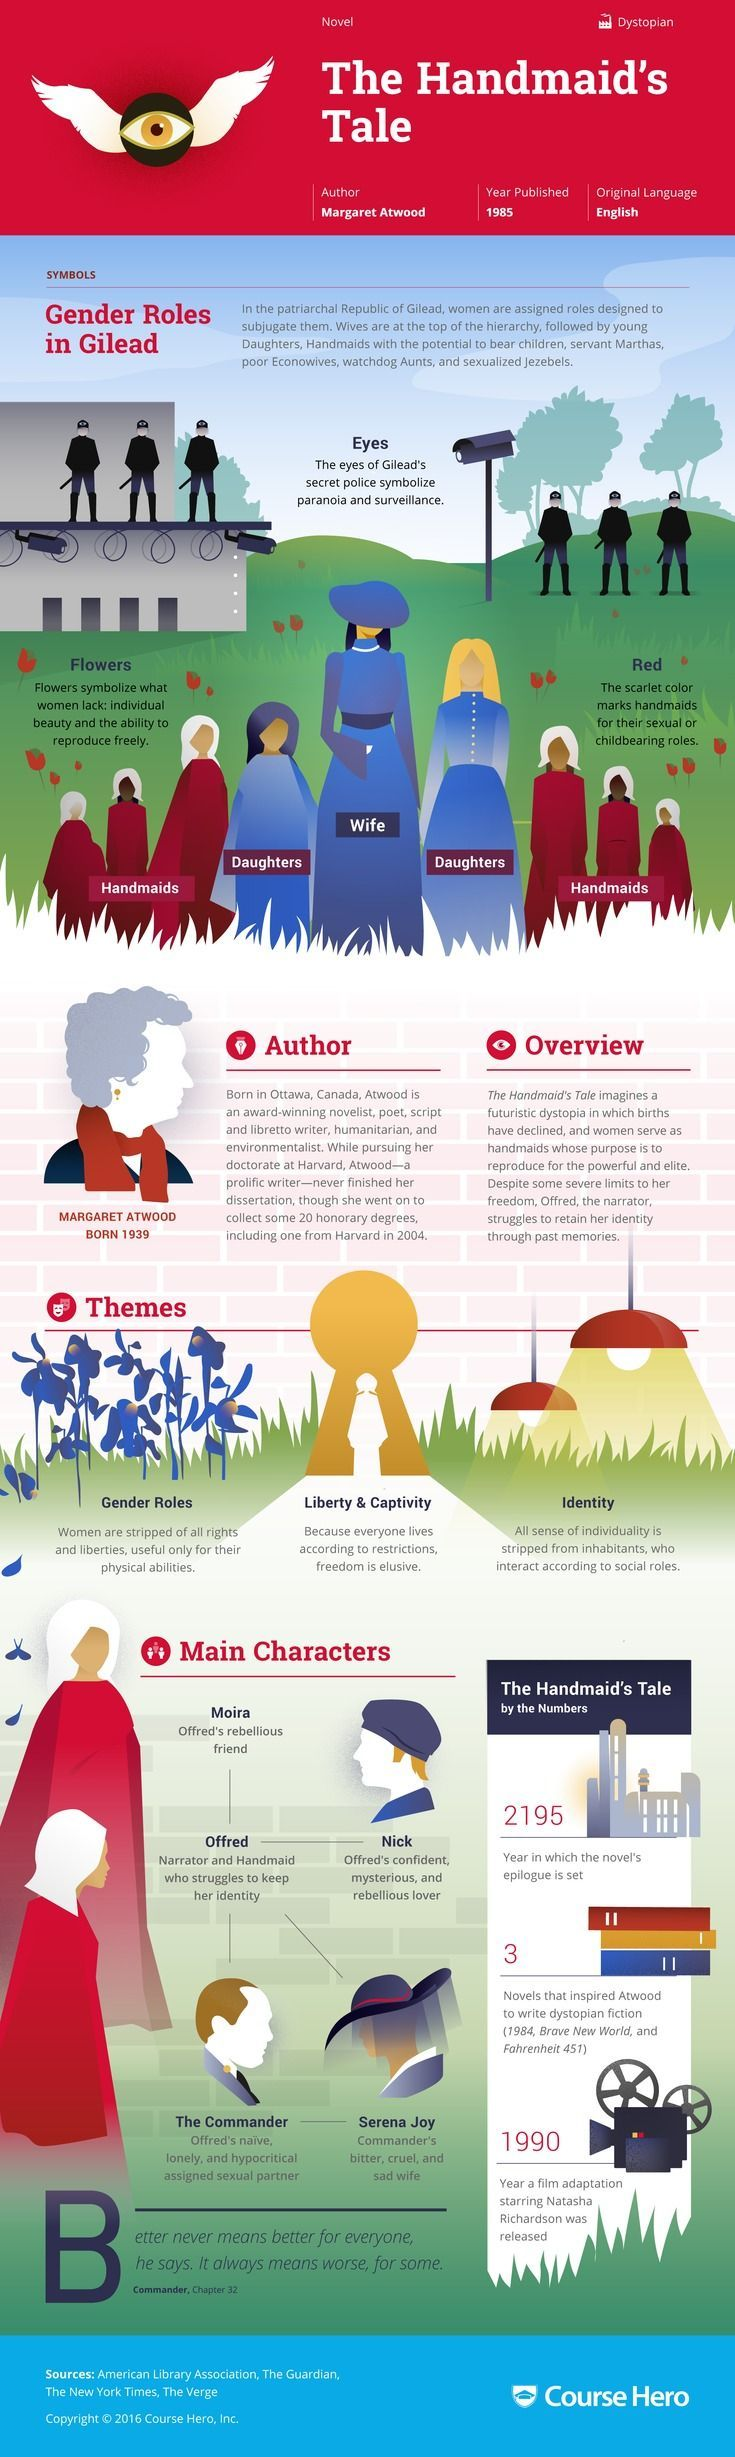 CourseHero infographic on The Handmaid's Tale